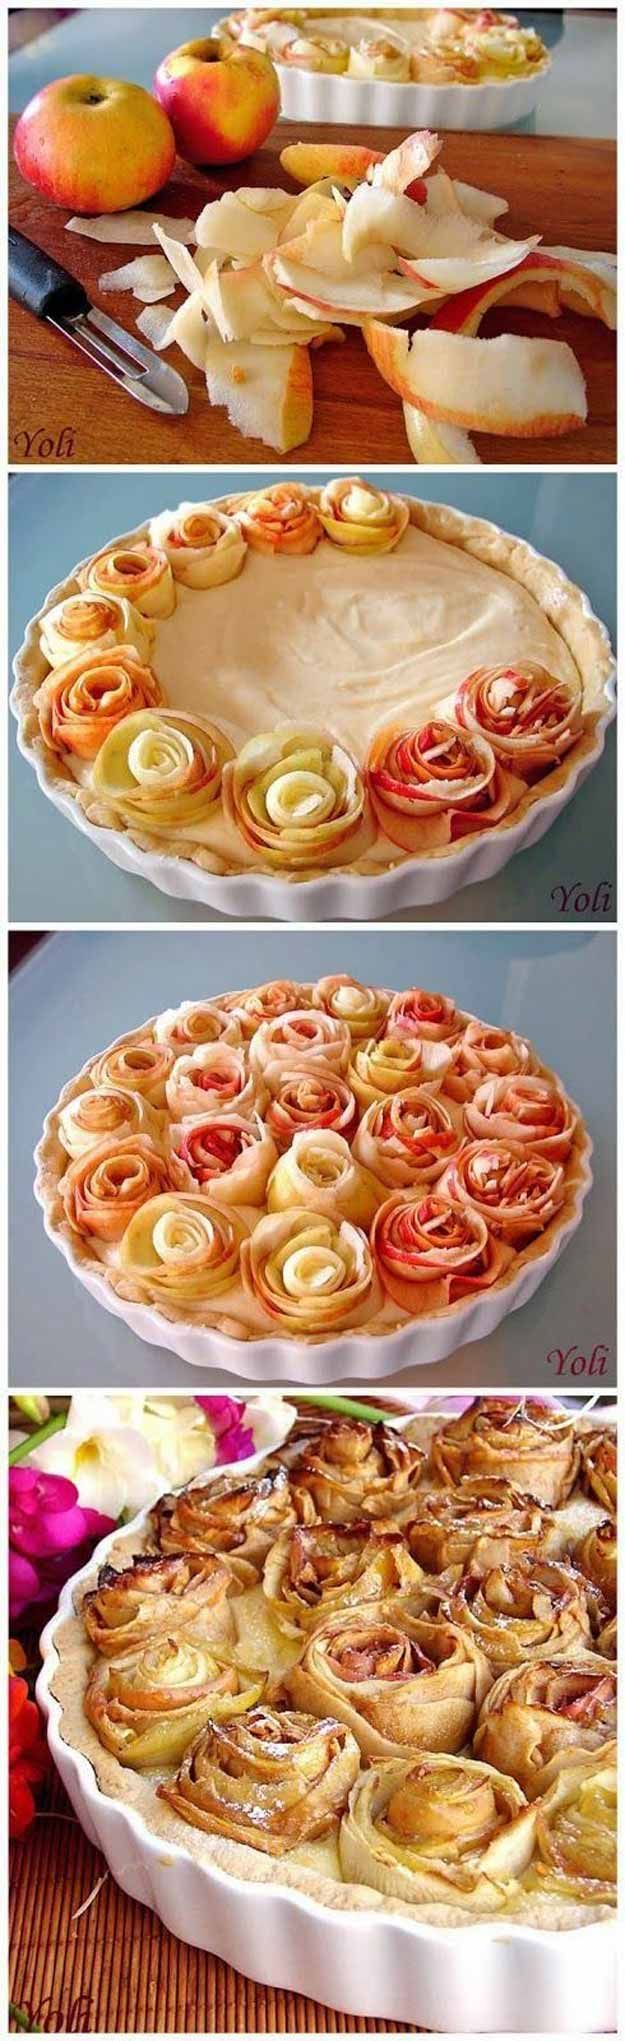 Homemade Apple Pie With Roses | 10 Appetizing Apple Pie Recipe Ideas by Pioneer Settler at http://pioneersettler.com/apple-pie-recipe/